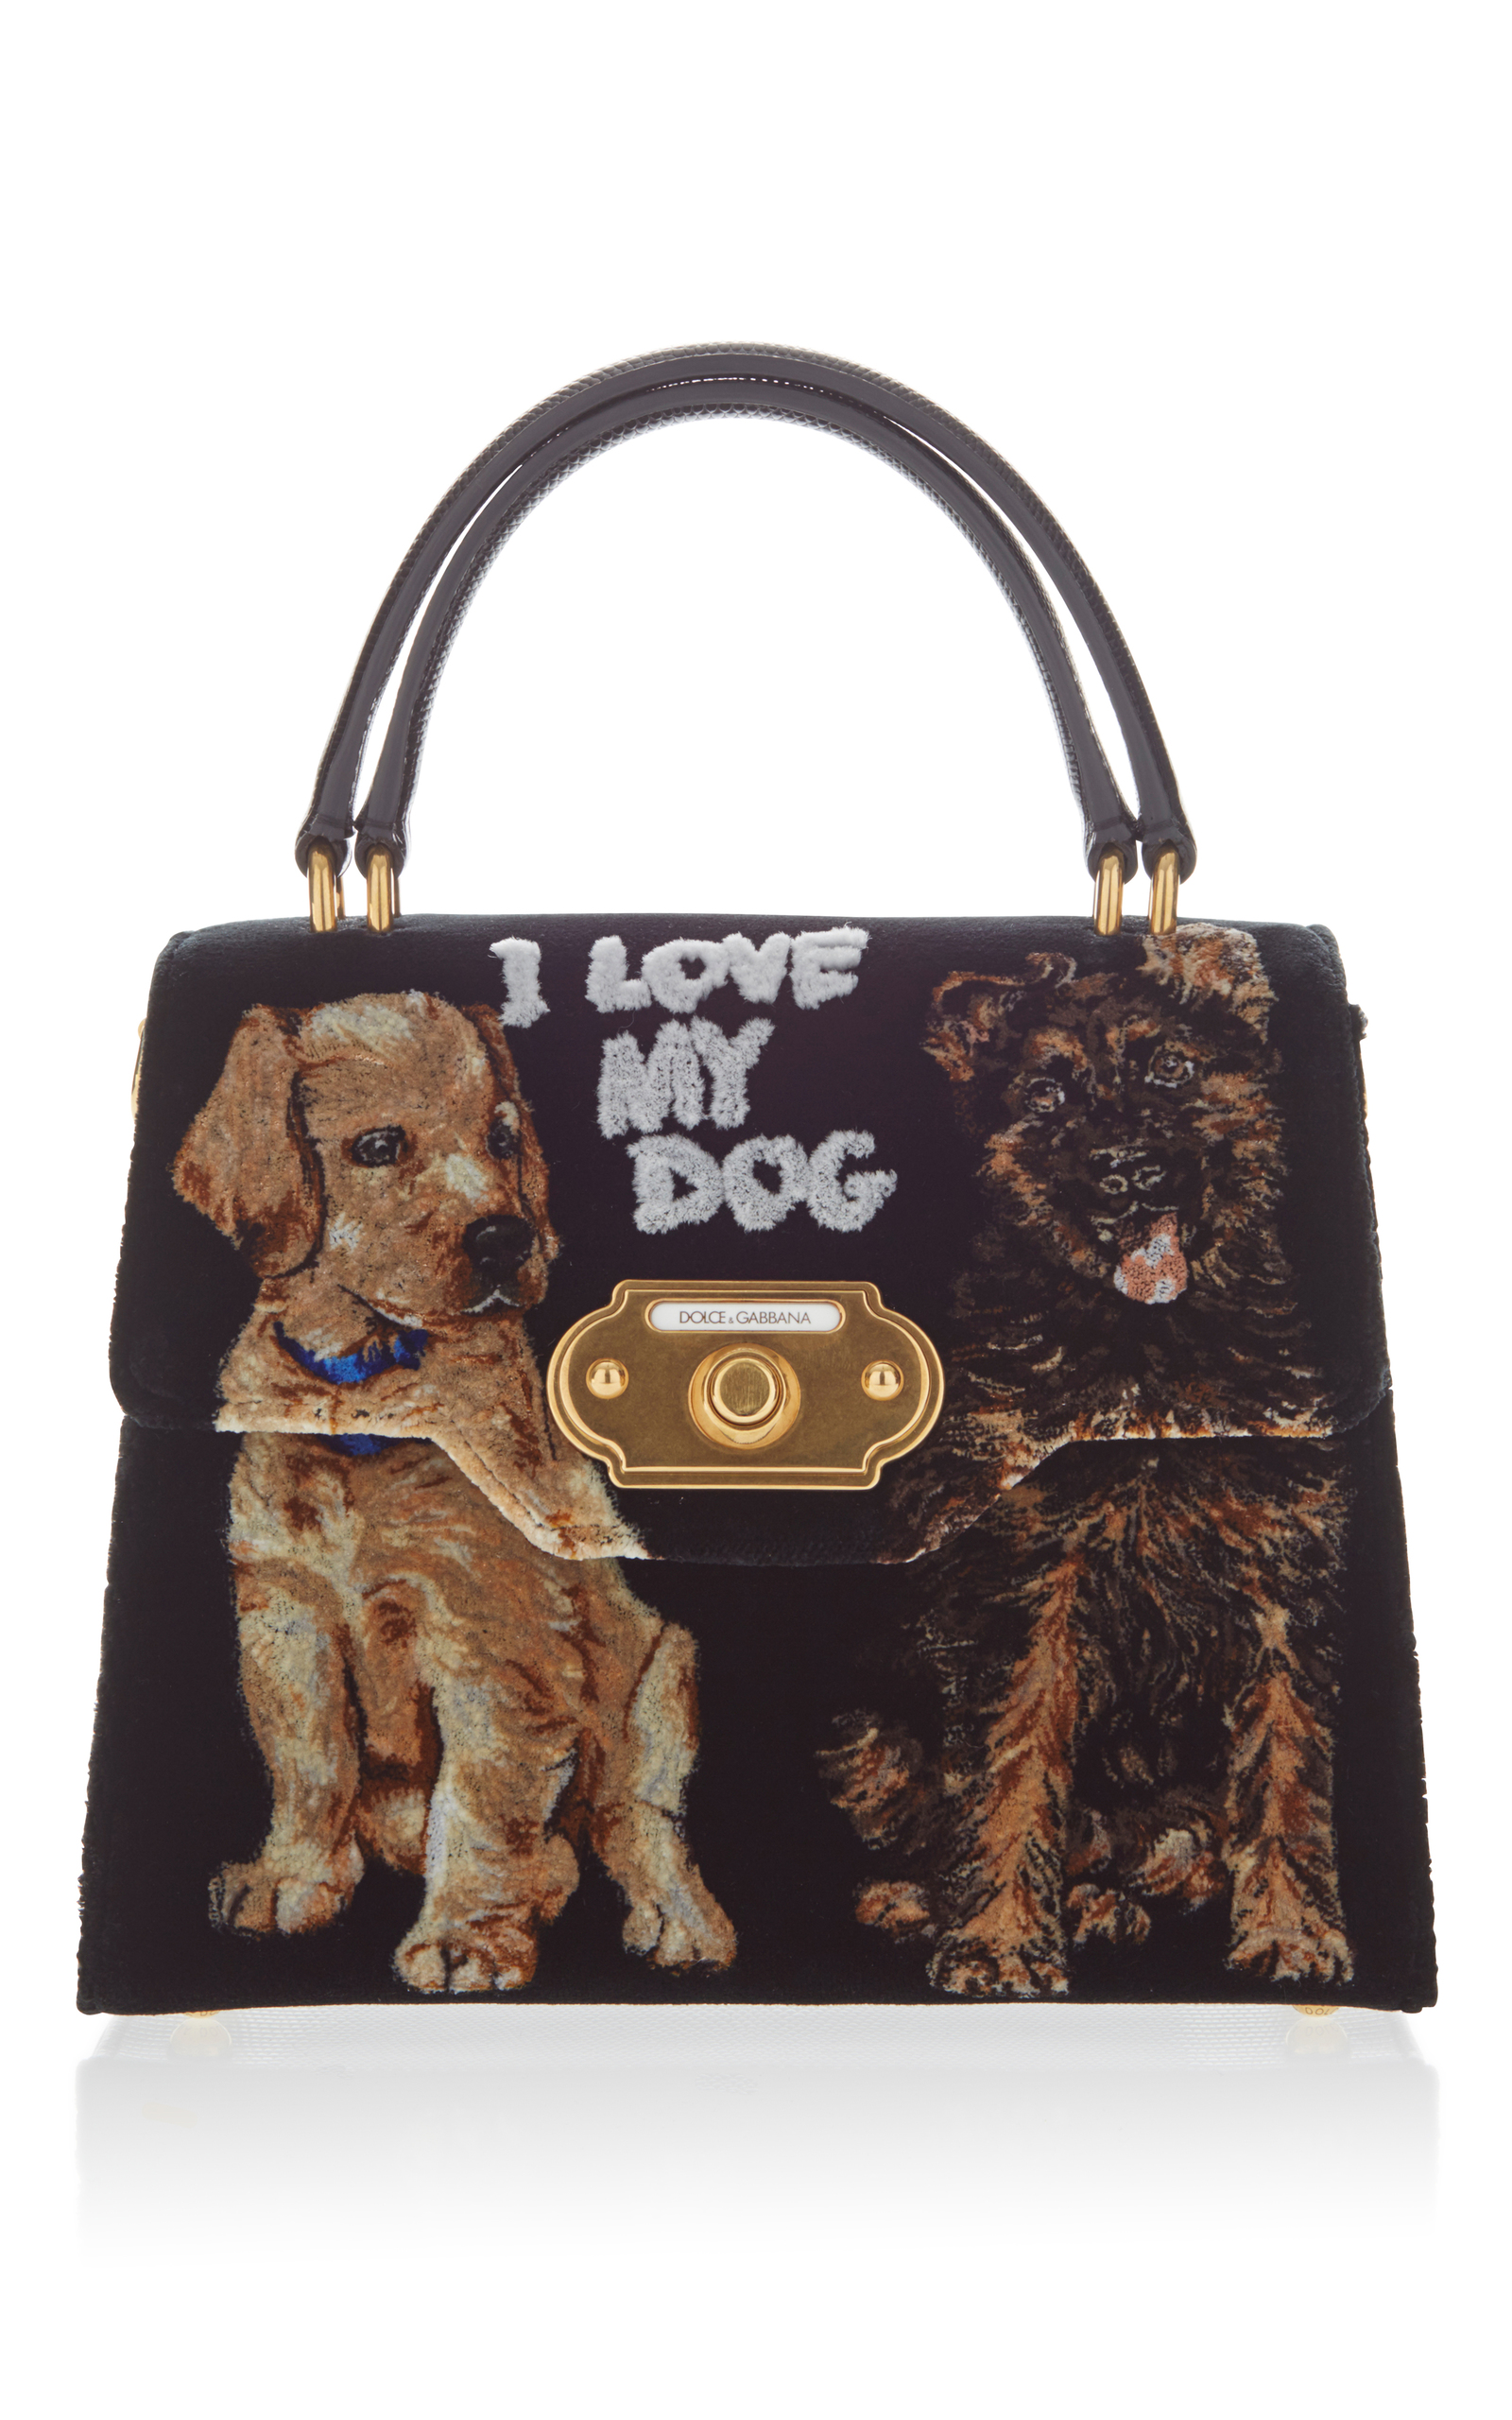 I Love My Dog  Top Handle Bag by Dolce   Gabbana  0e0f400d679ca